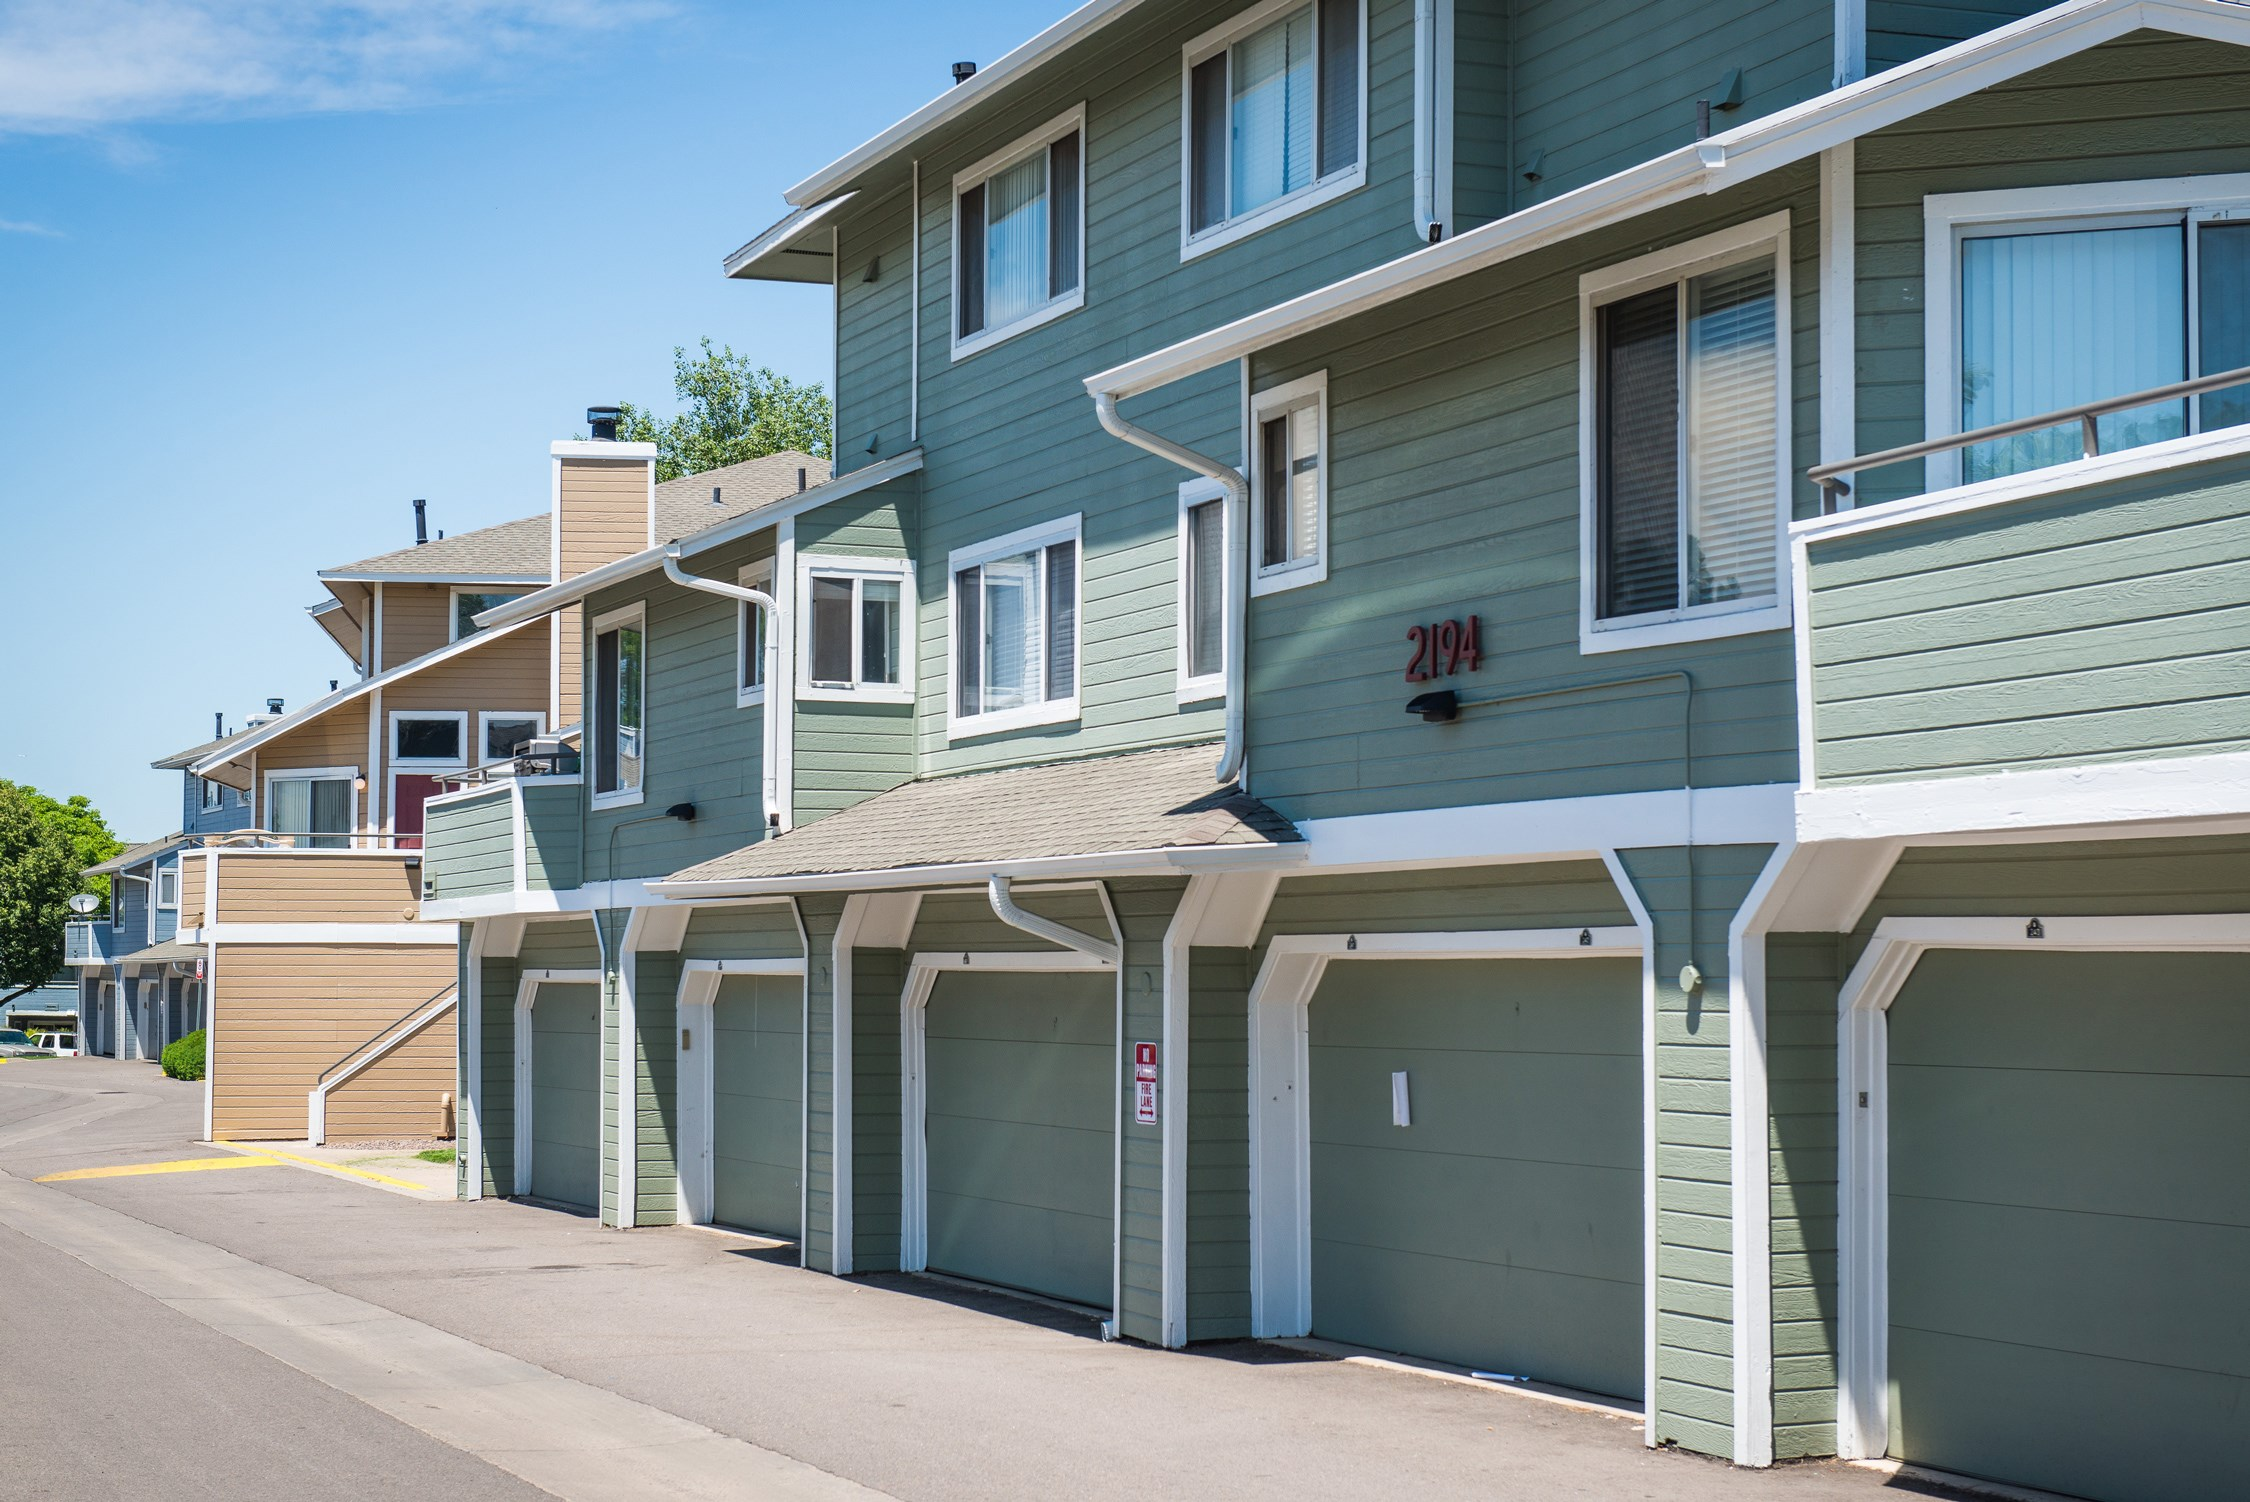 Attached Garages at Conifer Creek Apartments in Aurora, CO